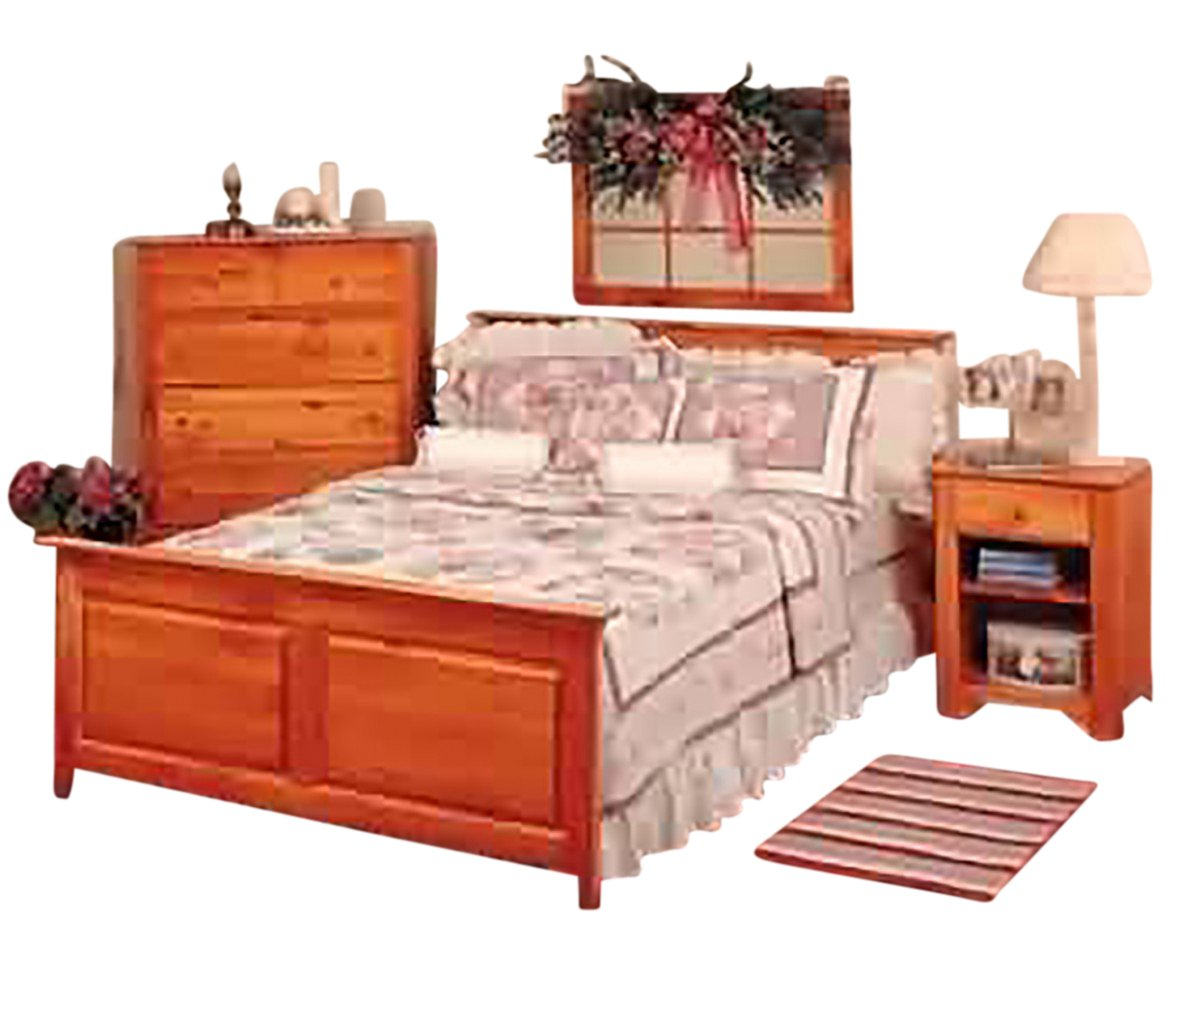 Footboard Unfinished Pine Twin Footboard 45.5'' W | Renovator's Supply by Renovators Supply Manufacturing